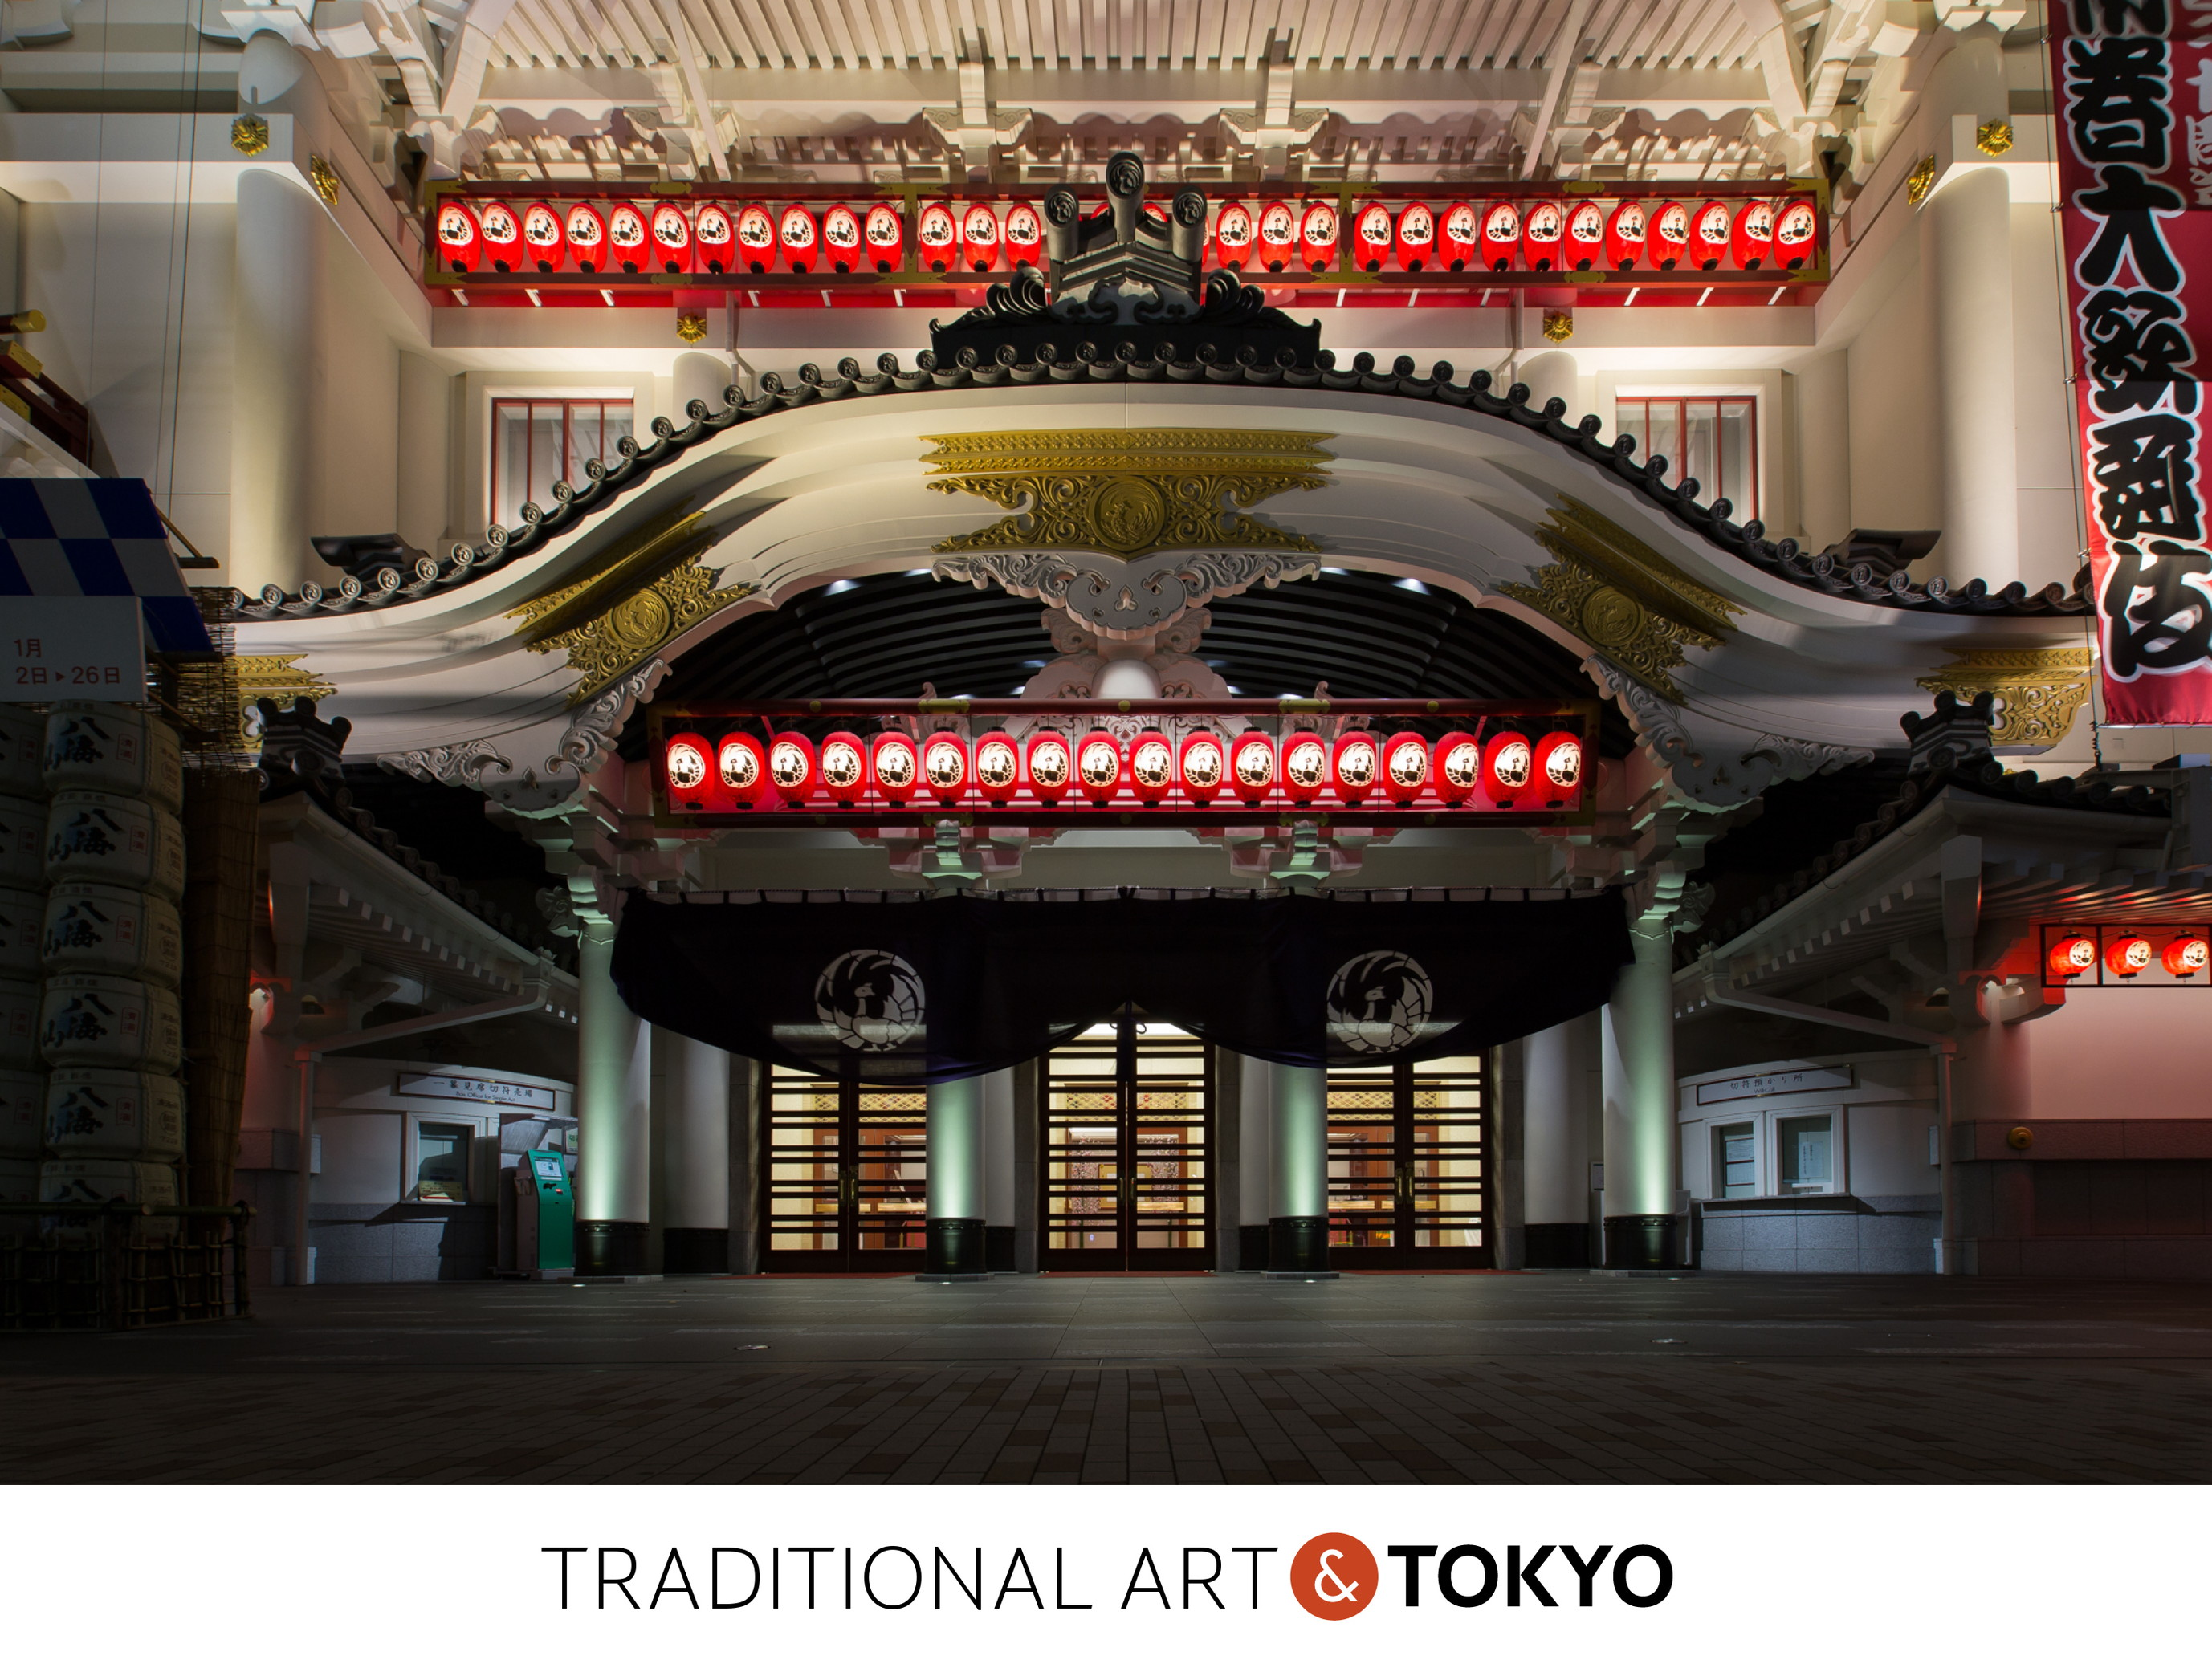 TRADITIONAL ART & TOKYO